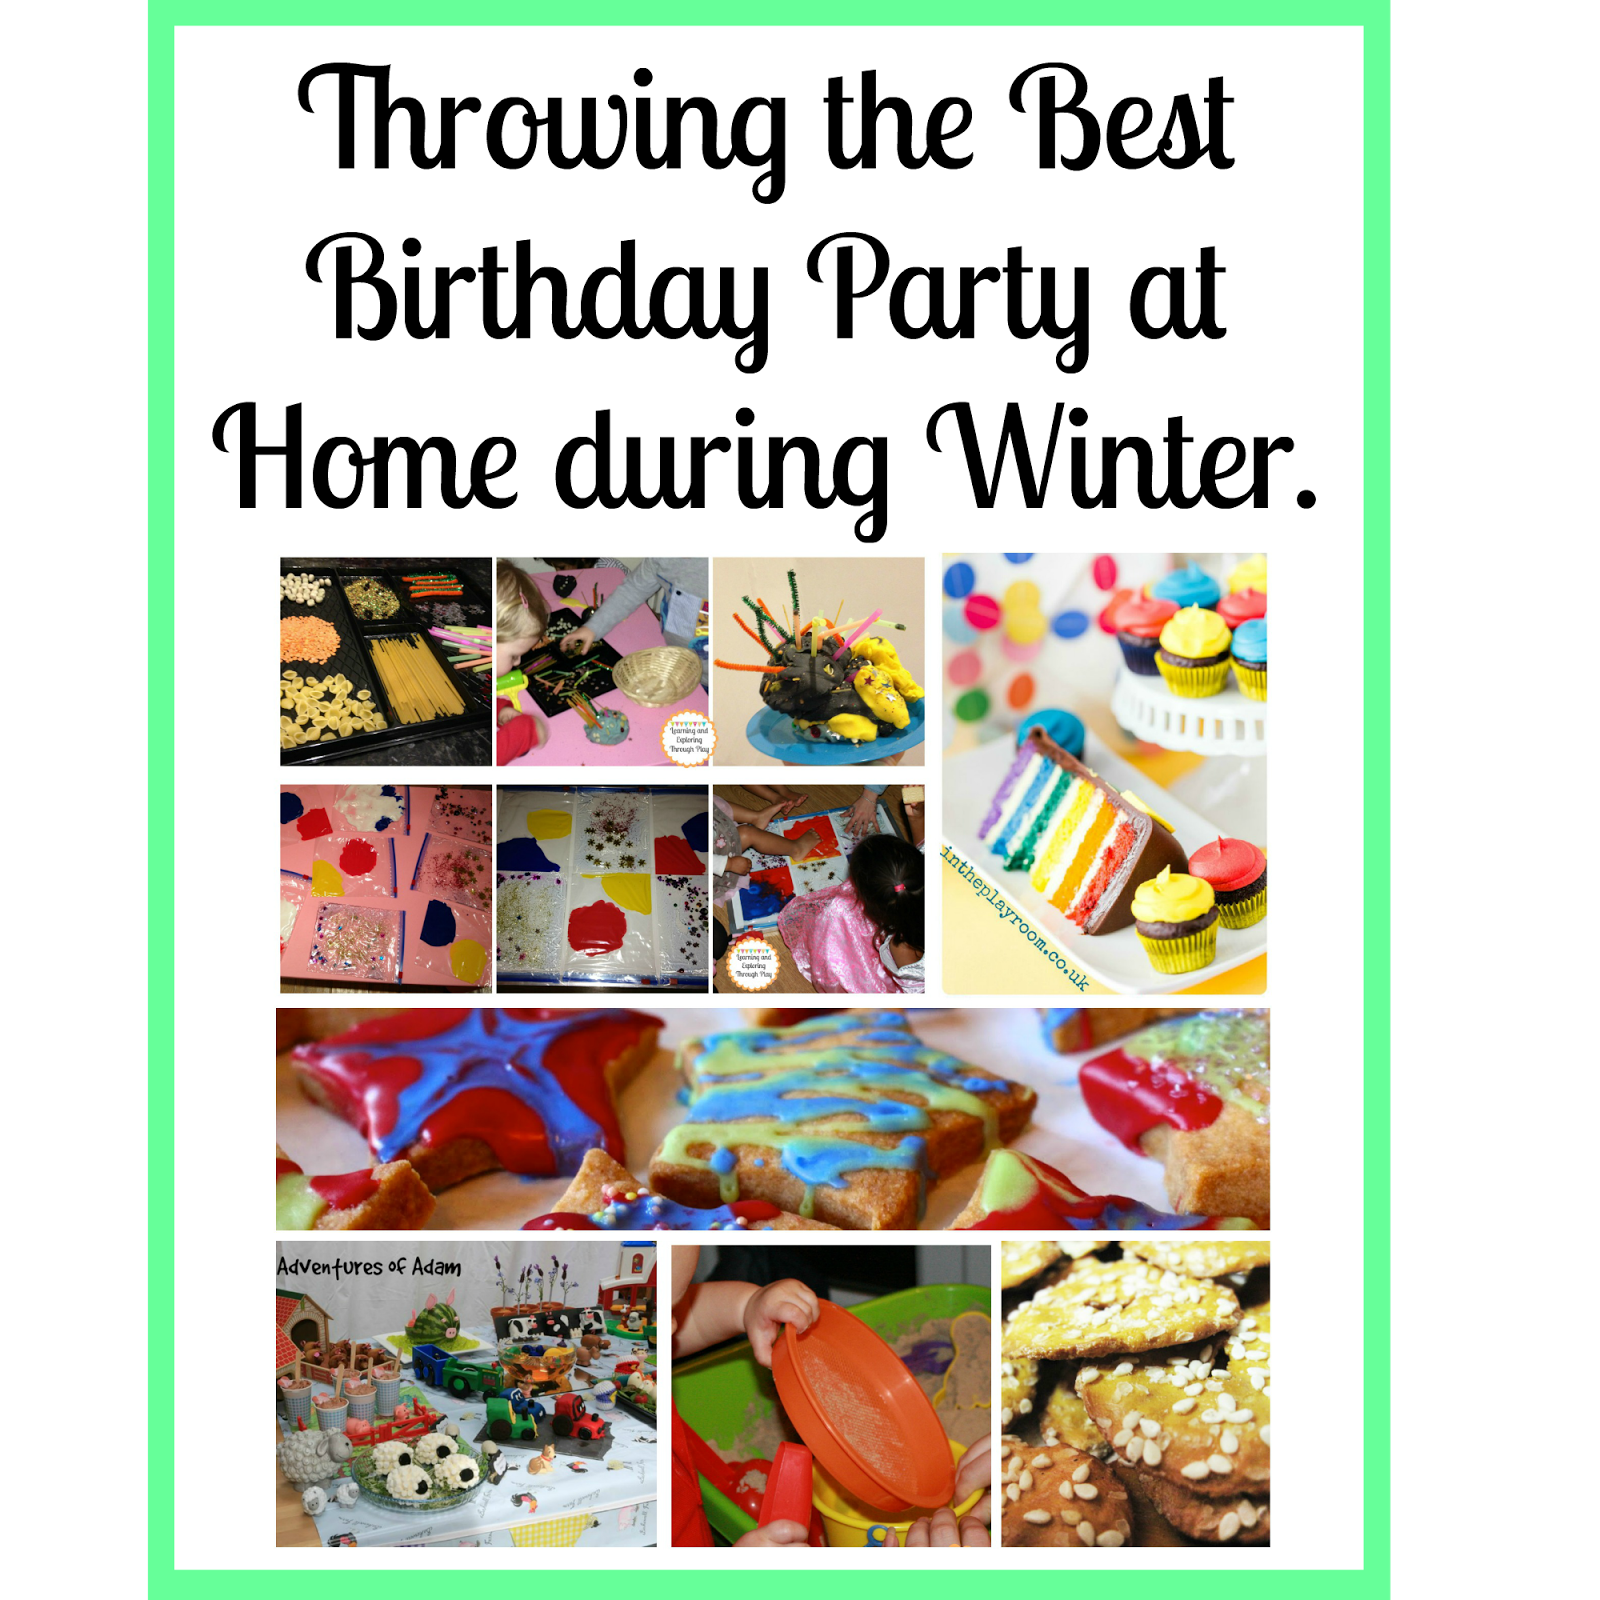 Learning And Exploring Through Play: Throwing The Best Birthday Party At Home During Winter